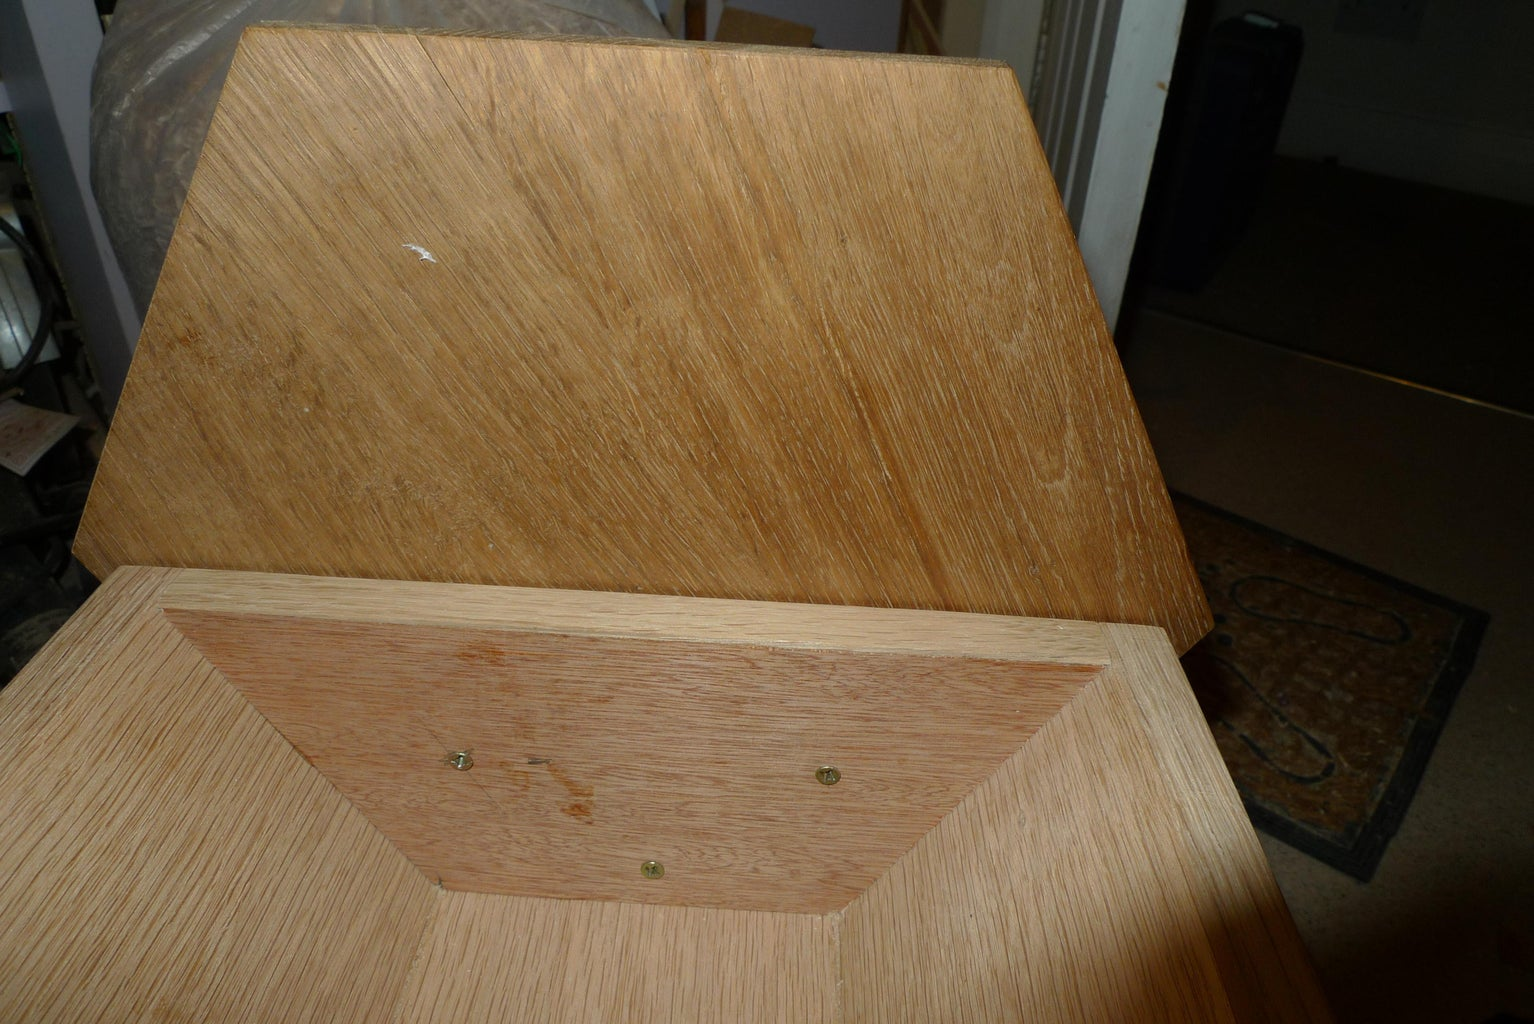 Add Drawer Front and Fit Drawer and Legs